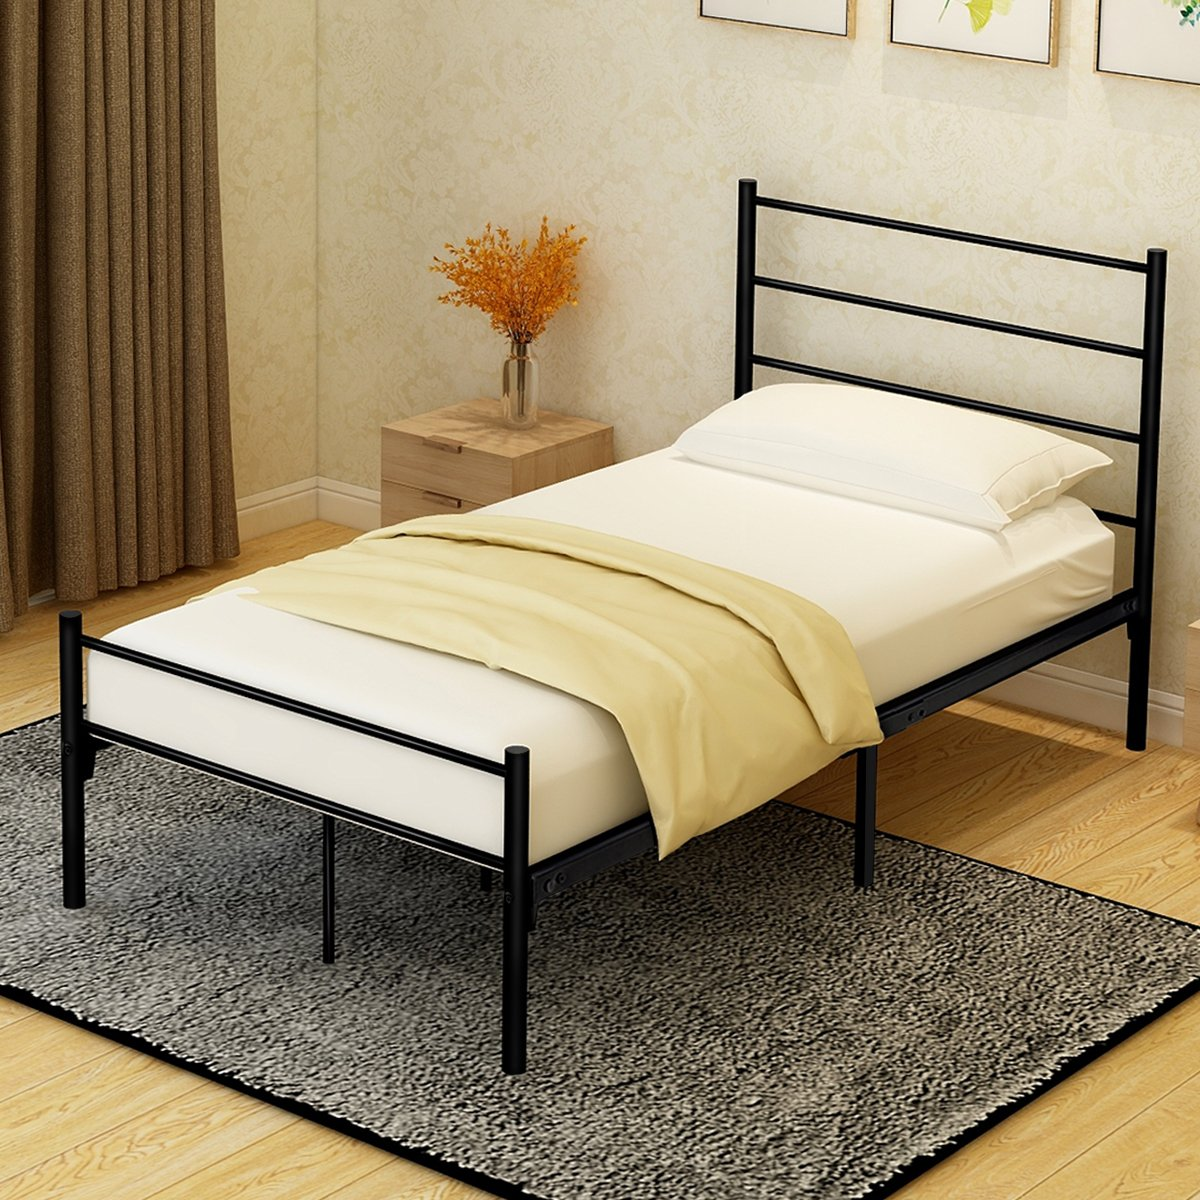 BUFF HOME Metal Bed Frame Platform with Headboards and Footboards Mattress Foundation Steel Slat Support Bases Single No Assembly Box Spring Replacement for Kids Adult Beds Black Twin Size